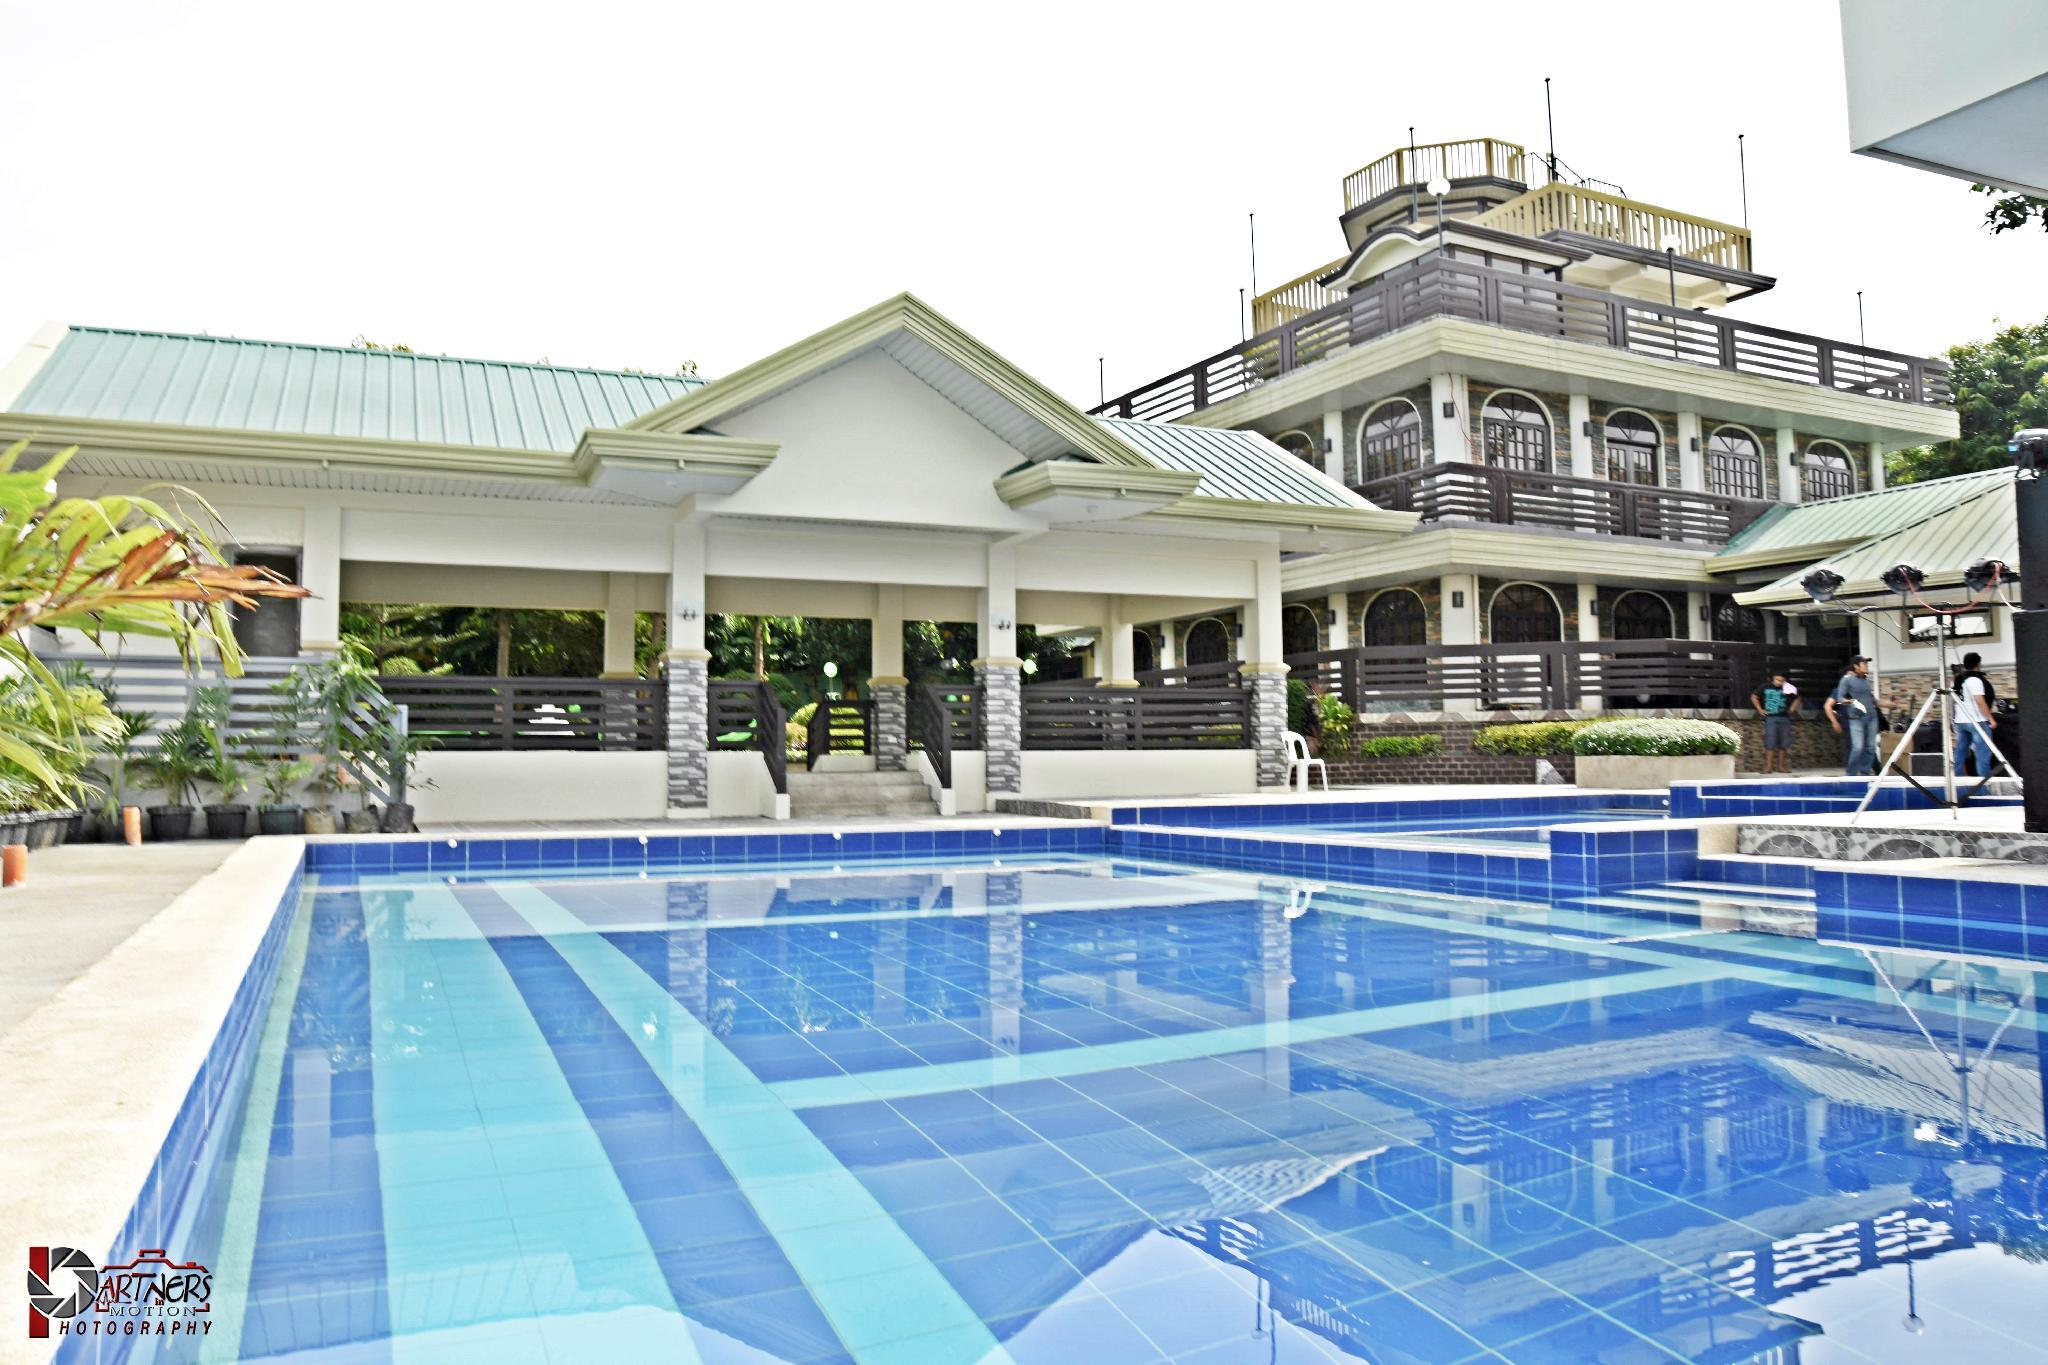 Villa Esmeralda Bryan's Resort Hotel and Restaurant, Palayan City